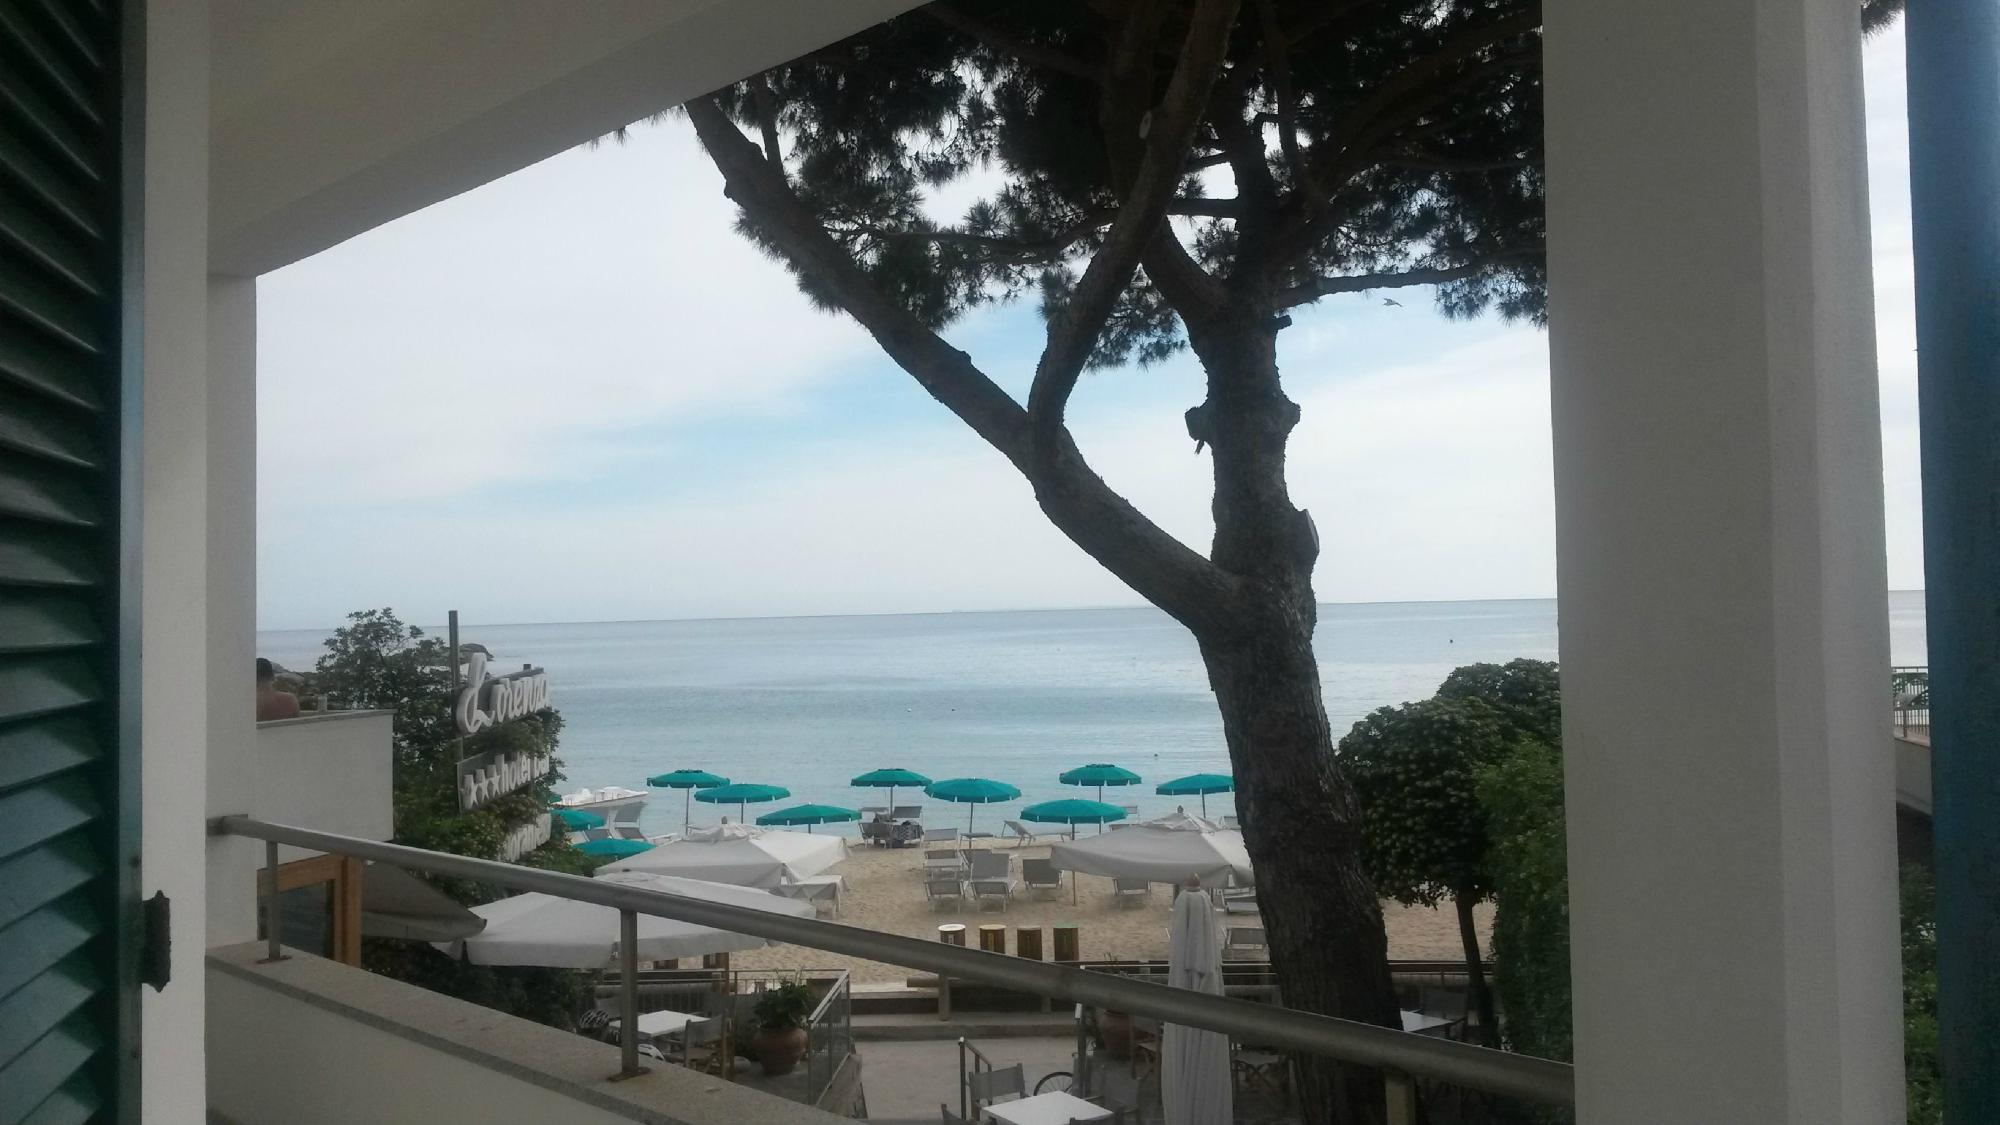 Beach B&B Lorenza